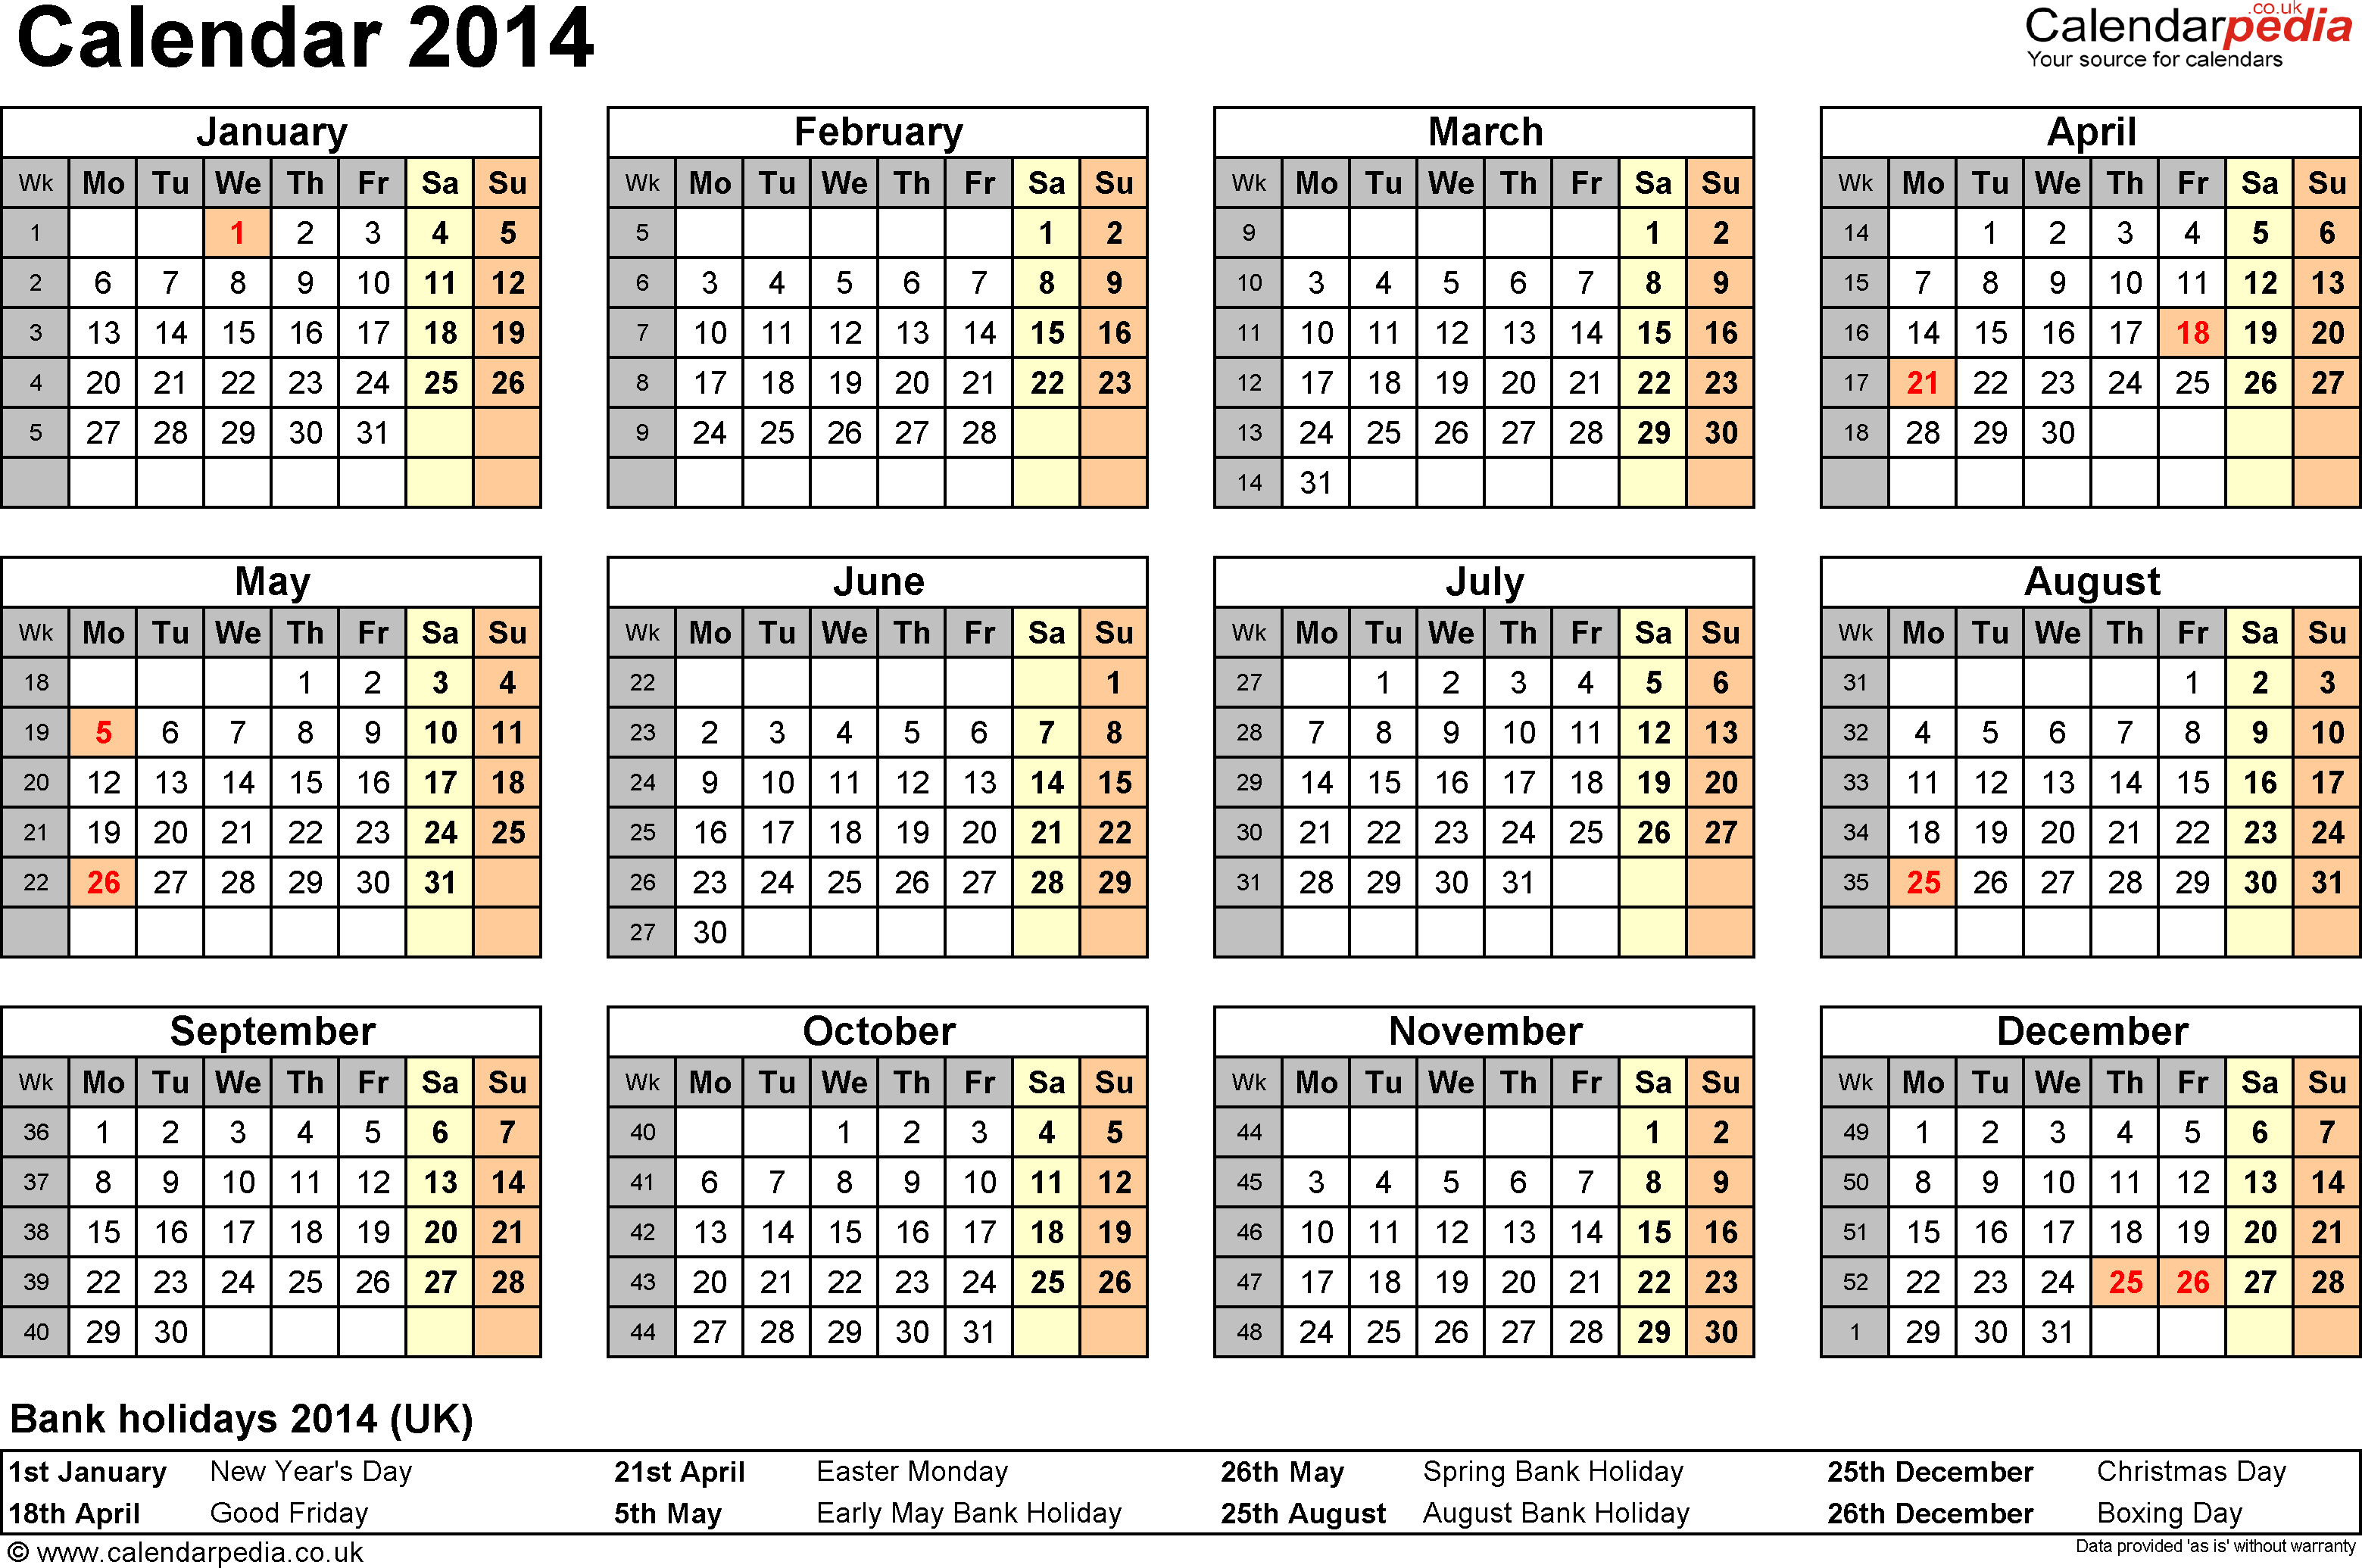 Template 8: Yearly calendar 2014 as Word template, year overview, 1 page